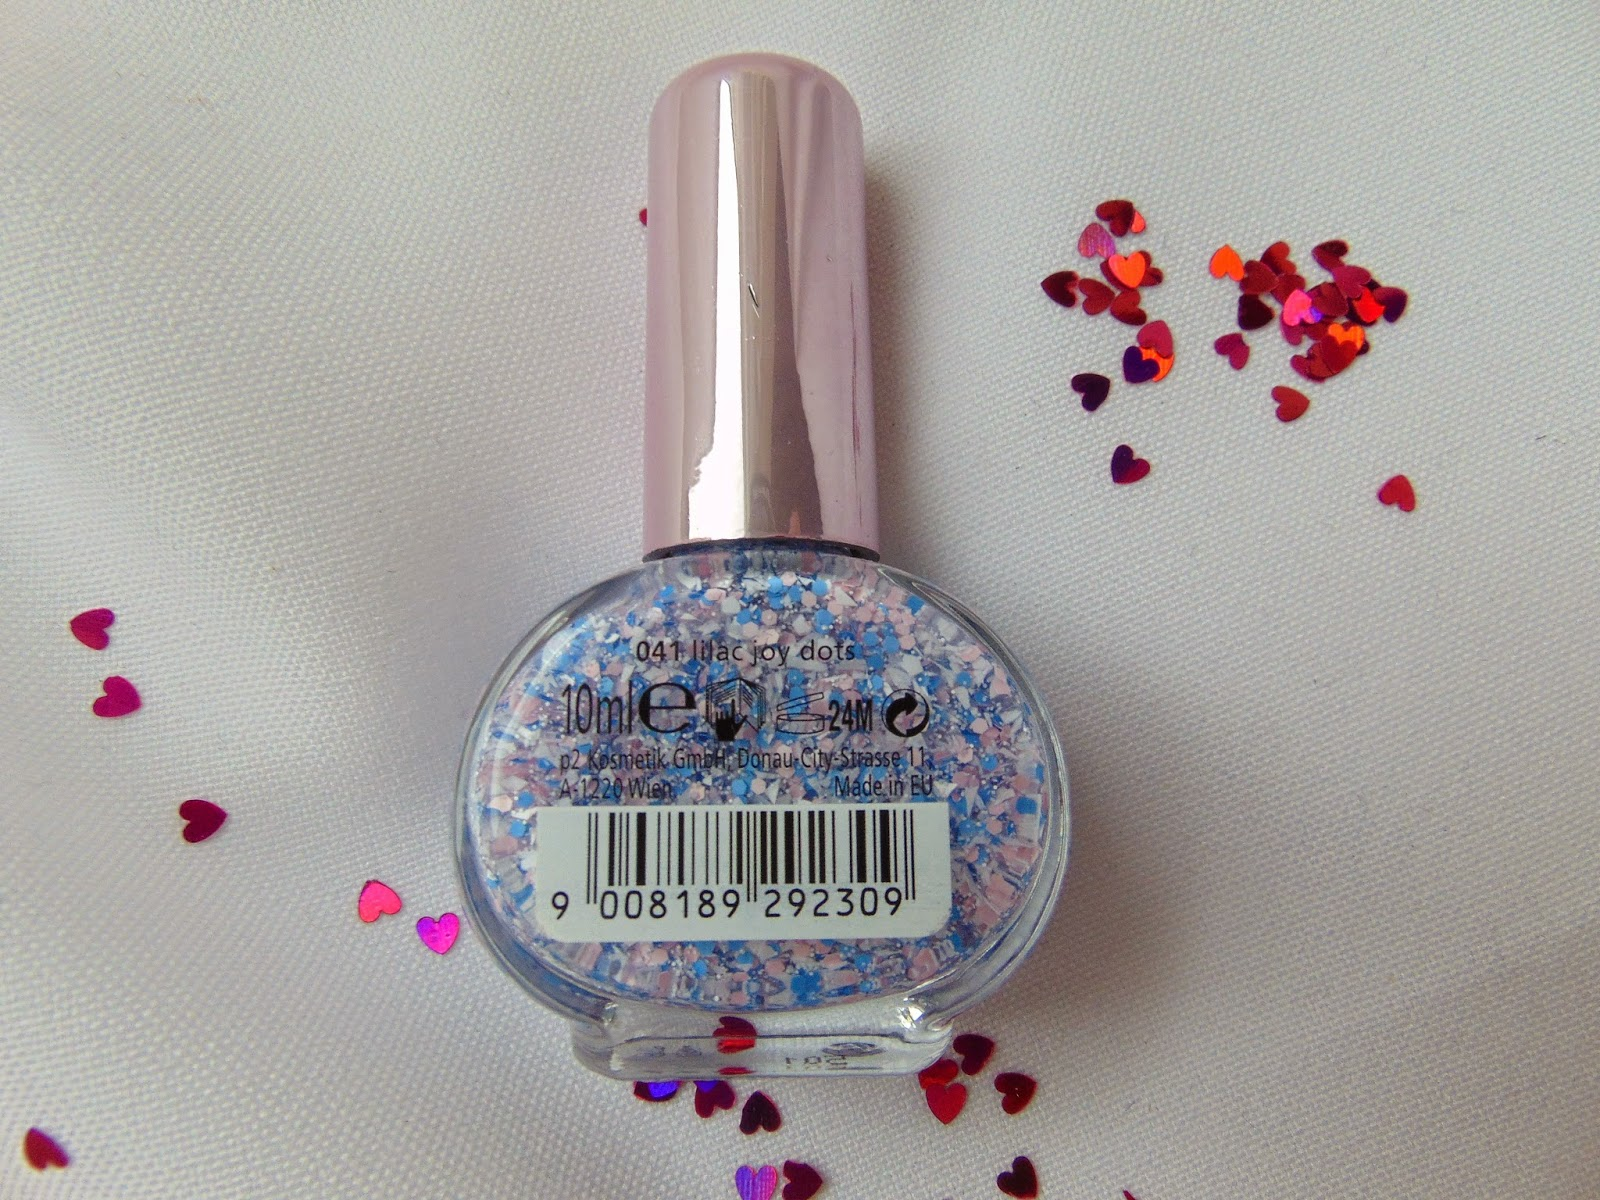 p2 Limited Edition: Just dream like - spring's fav nail top coat - Lilac Joy dots - www.annitschkasblog.de